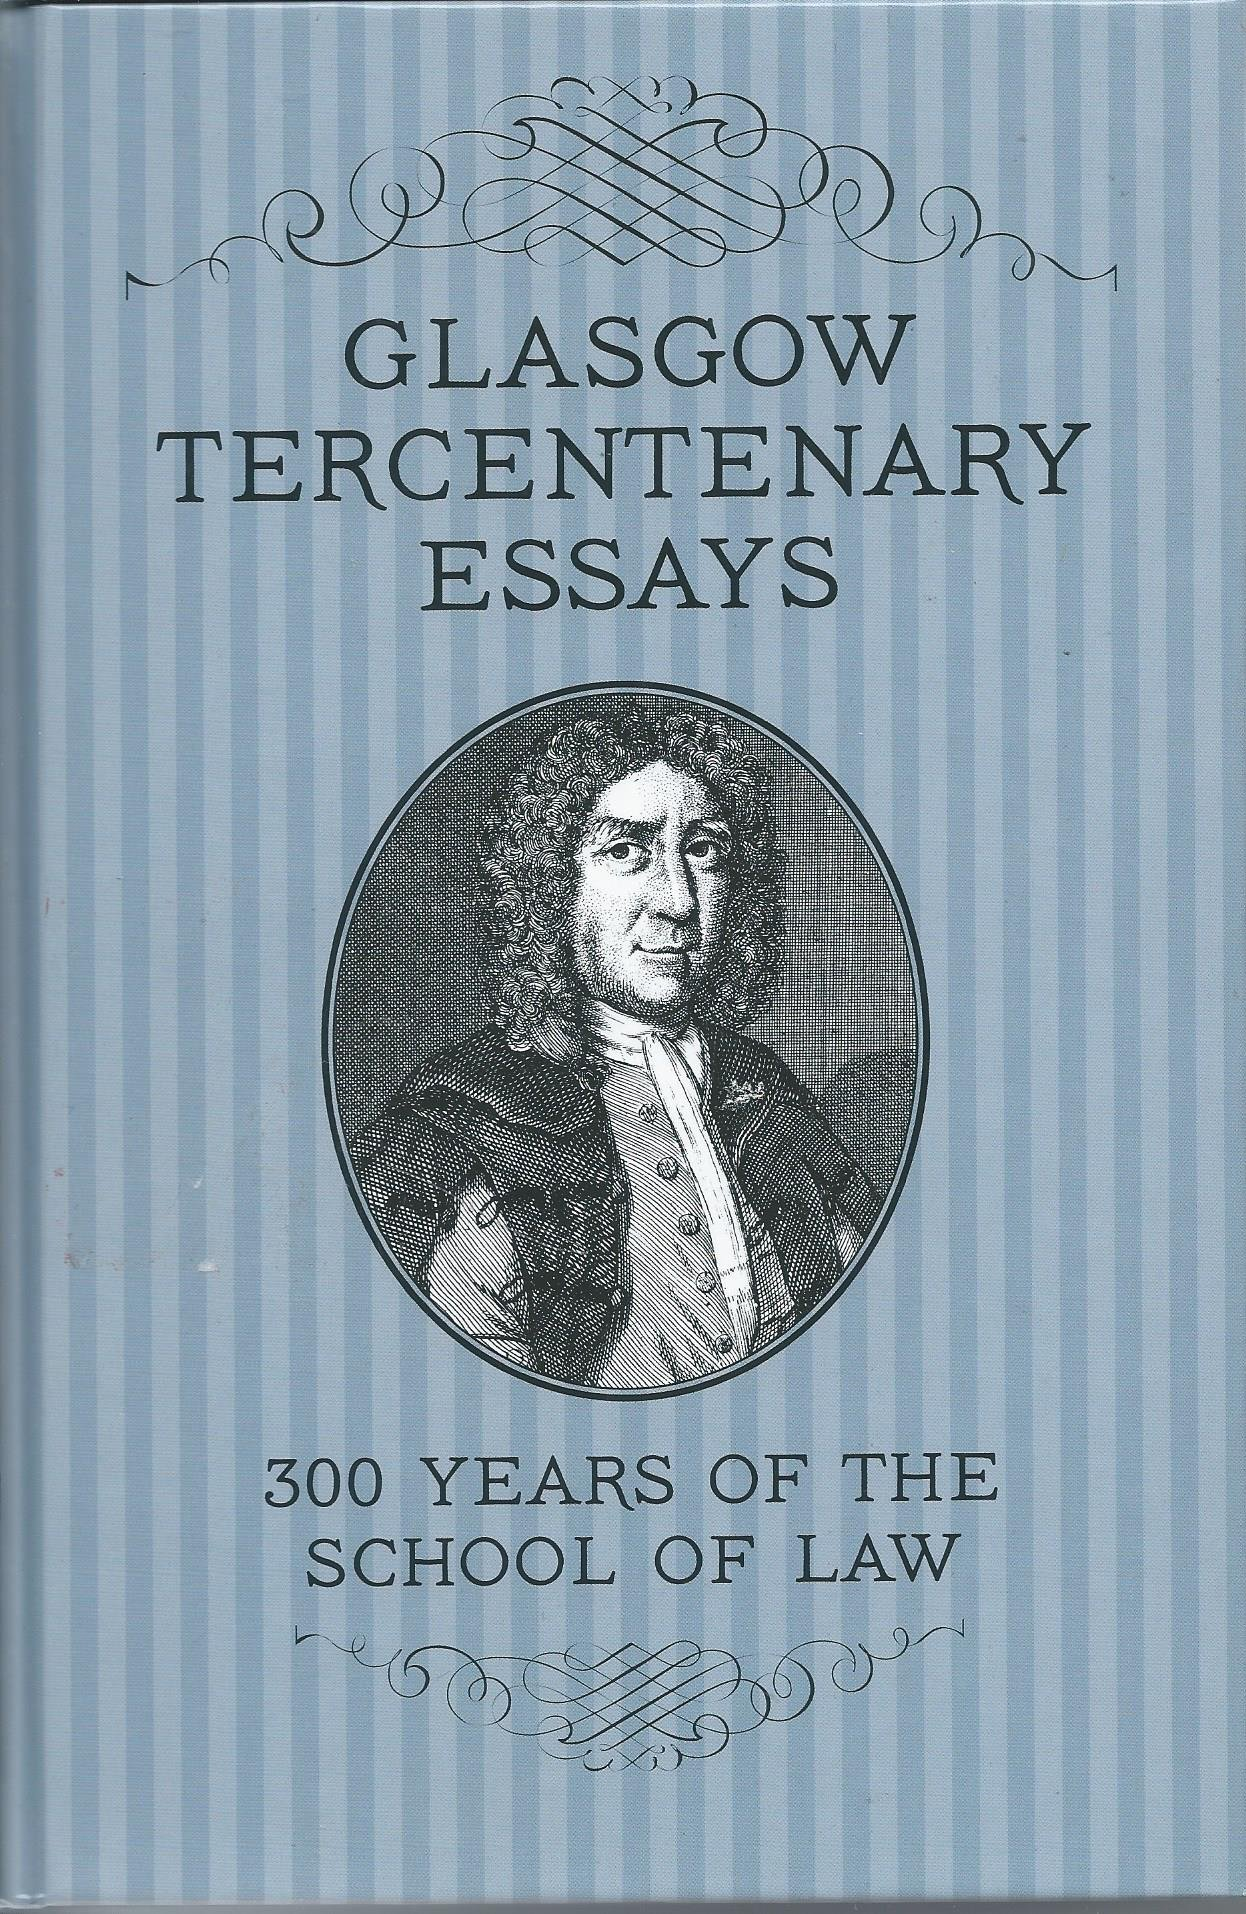 Glasgow Tercentenary Essays: 300 Years of the School of Law pdf